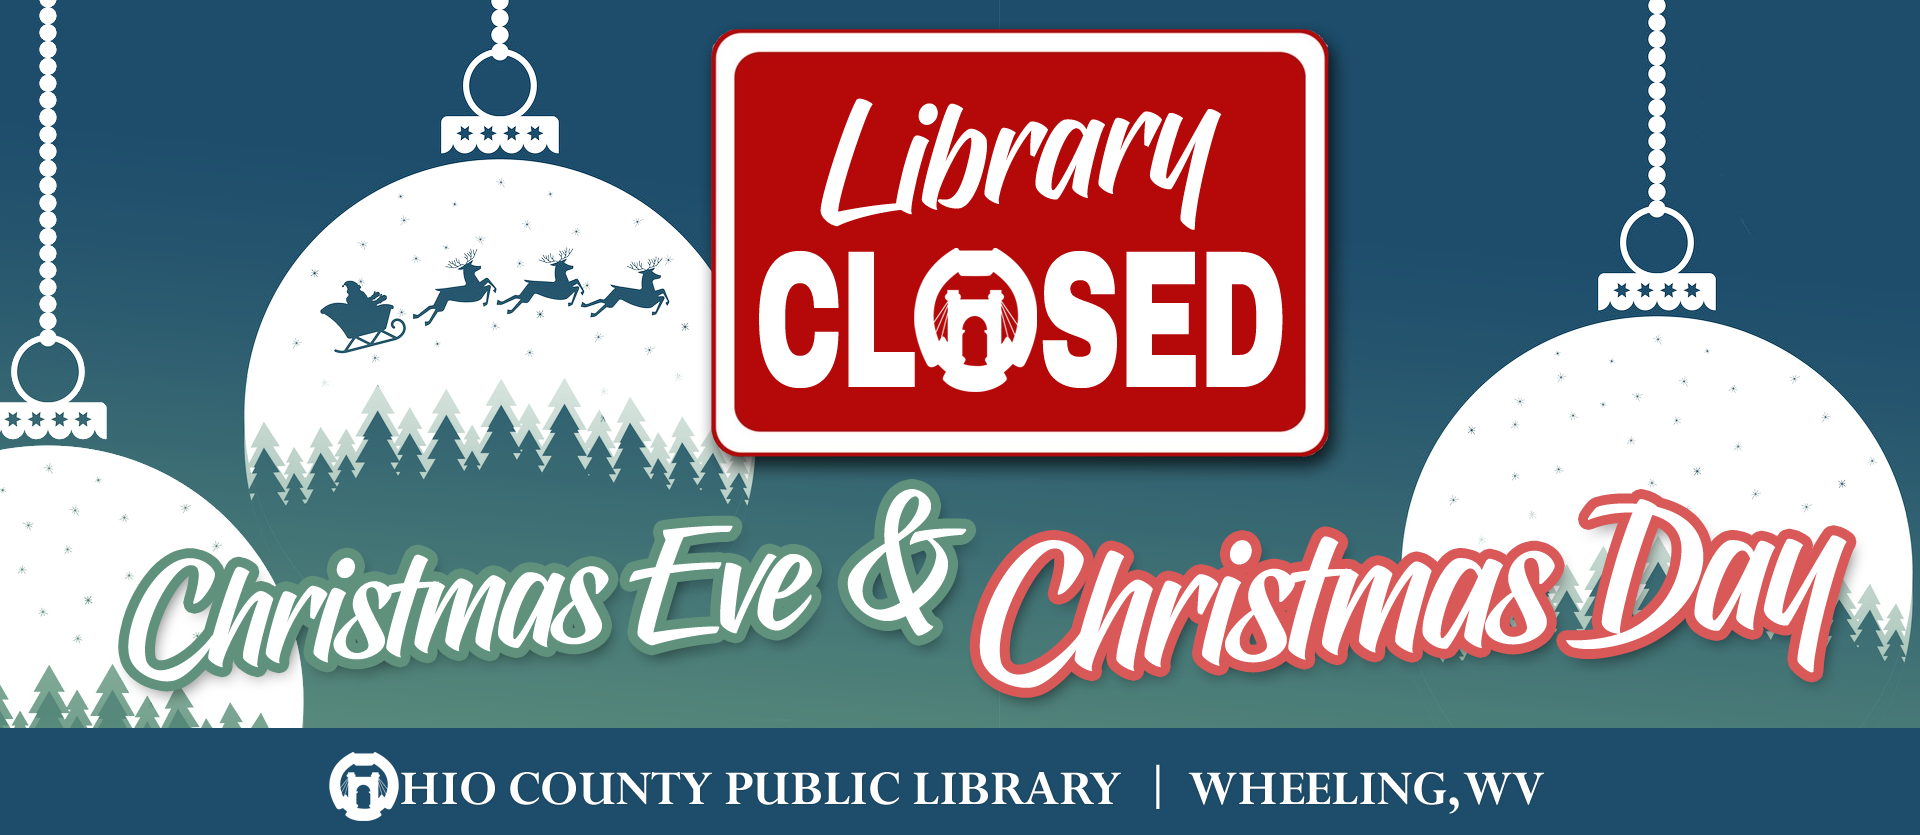 The Library will be closed Christmas eve, Tuesday, December 24 and Christmas Day, Wednesday, December 25, 2019.